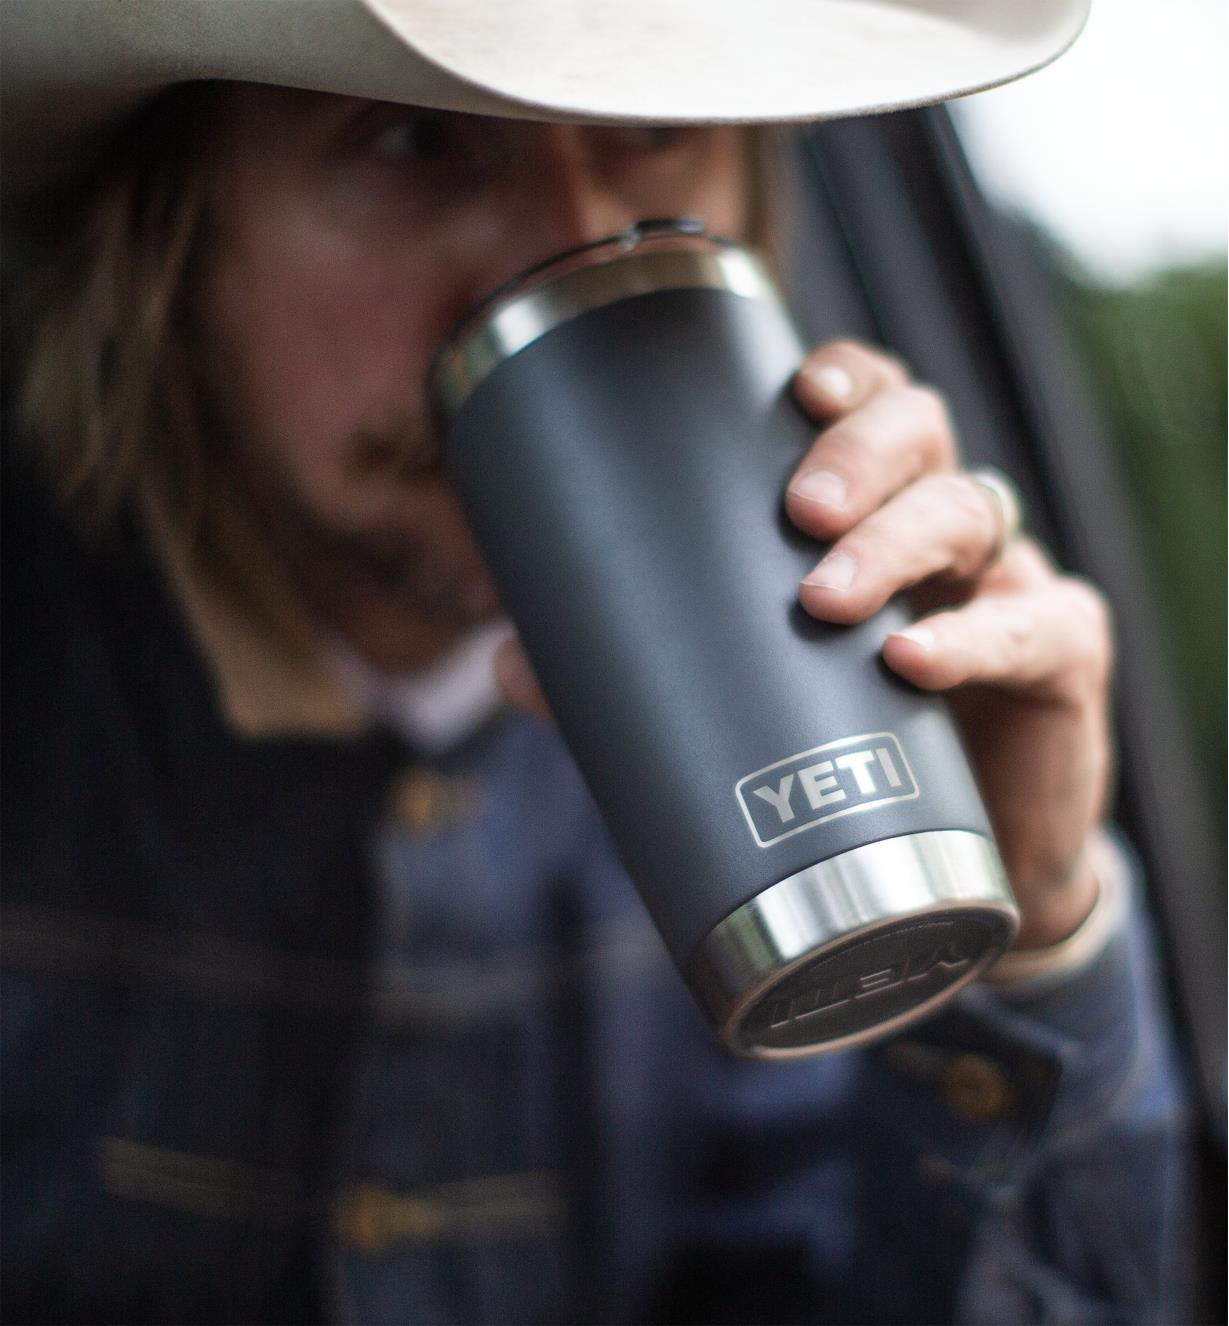 A man drinking from the 20 oz black Yeti Tumbler